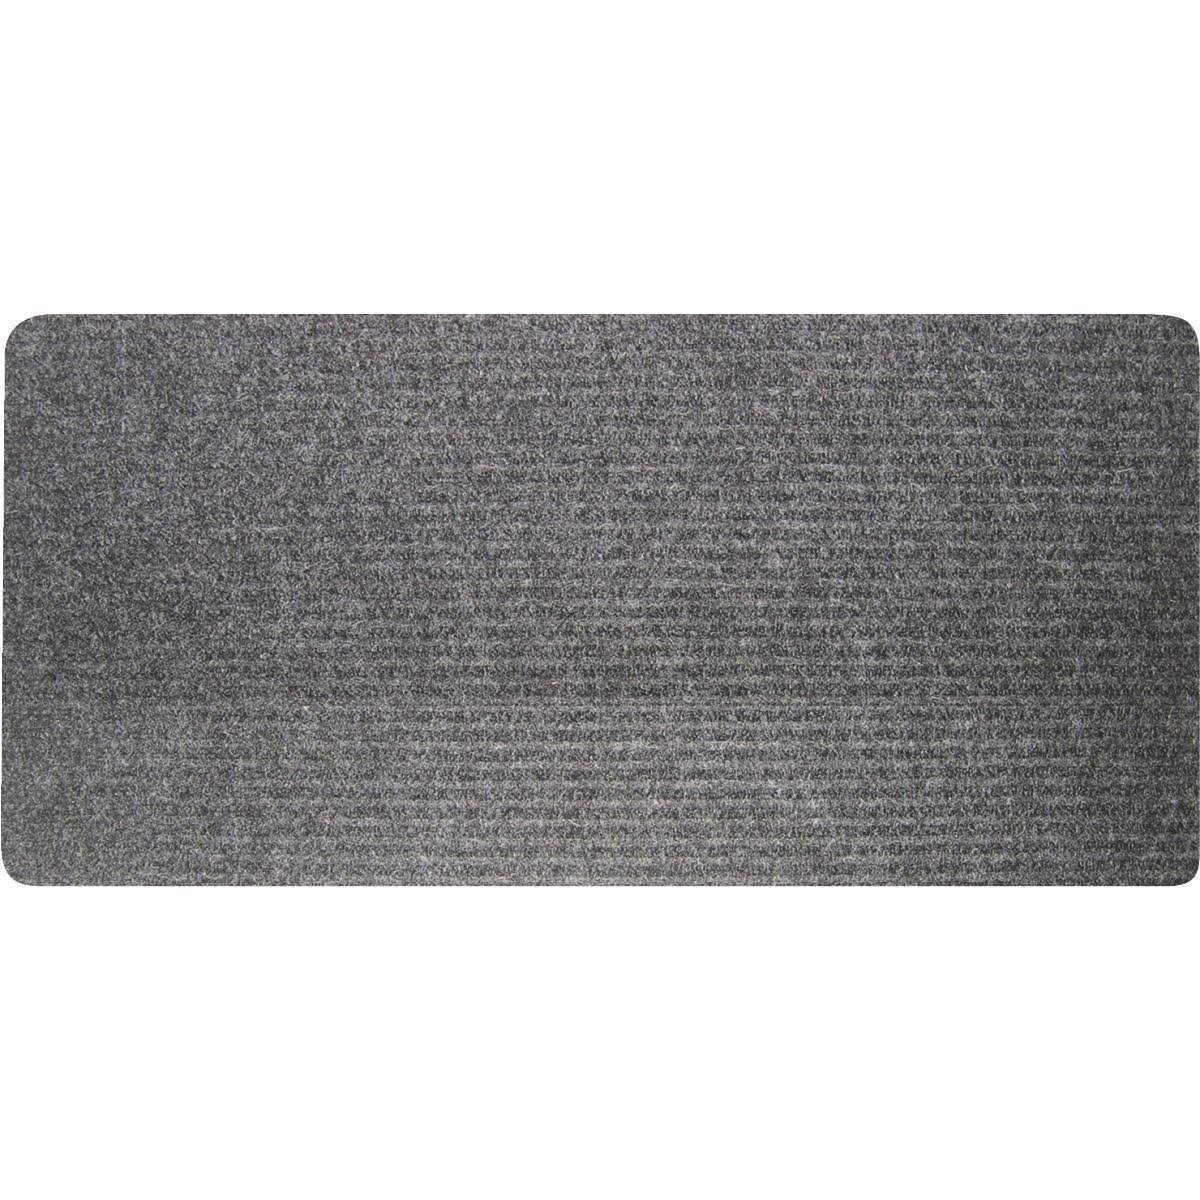 W. J. Dennis Carpet Runner - Charcoal, 24in X 60in